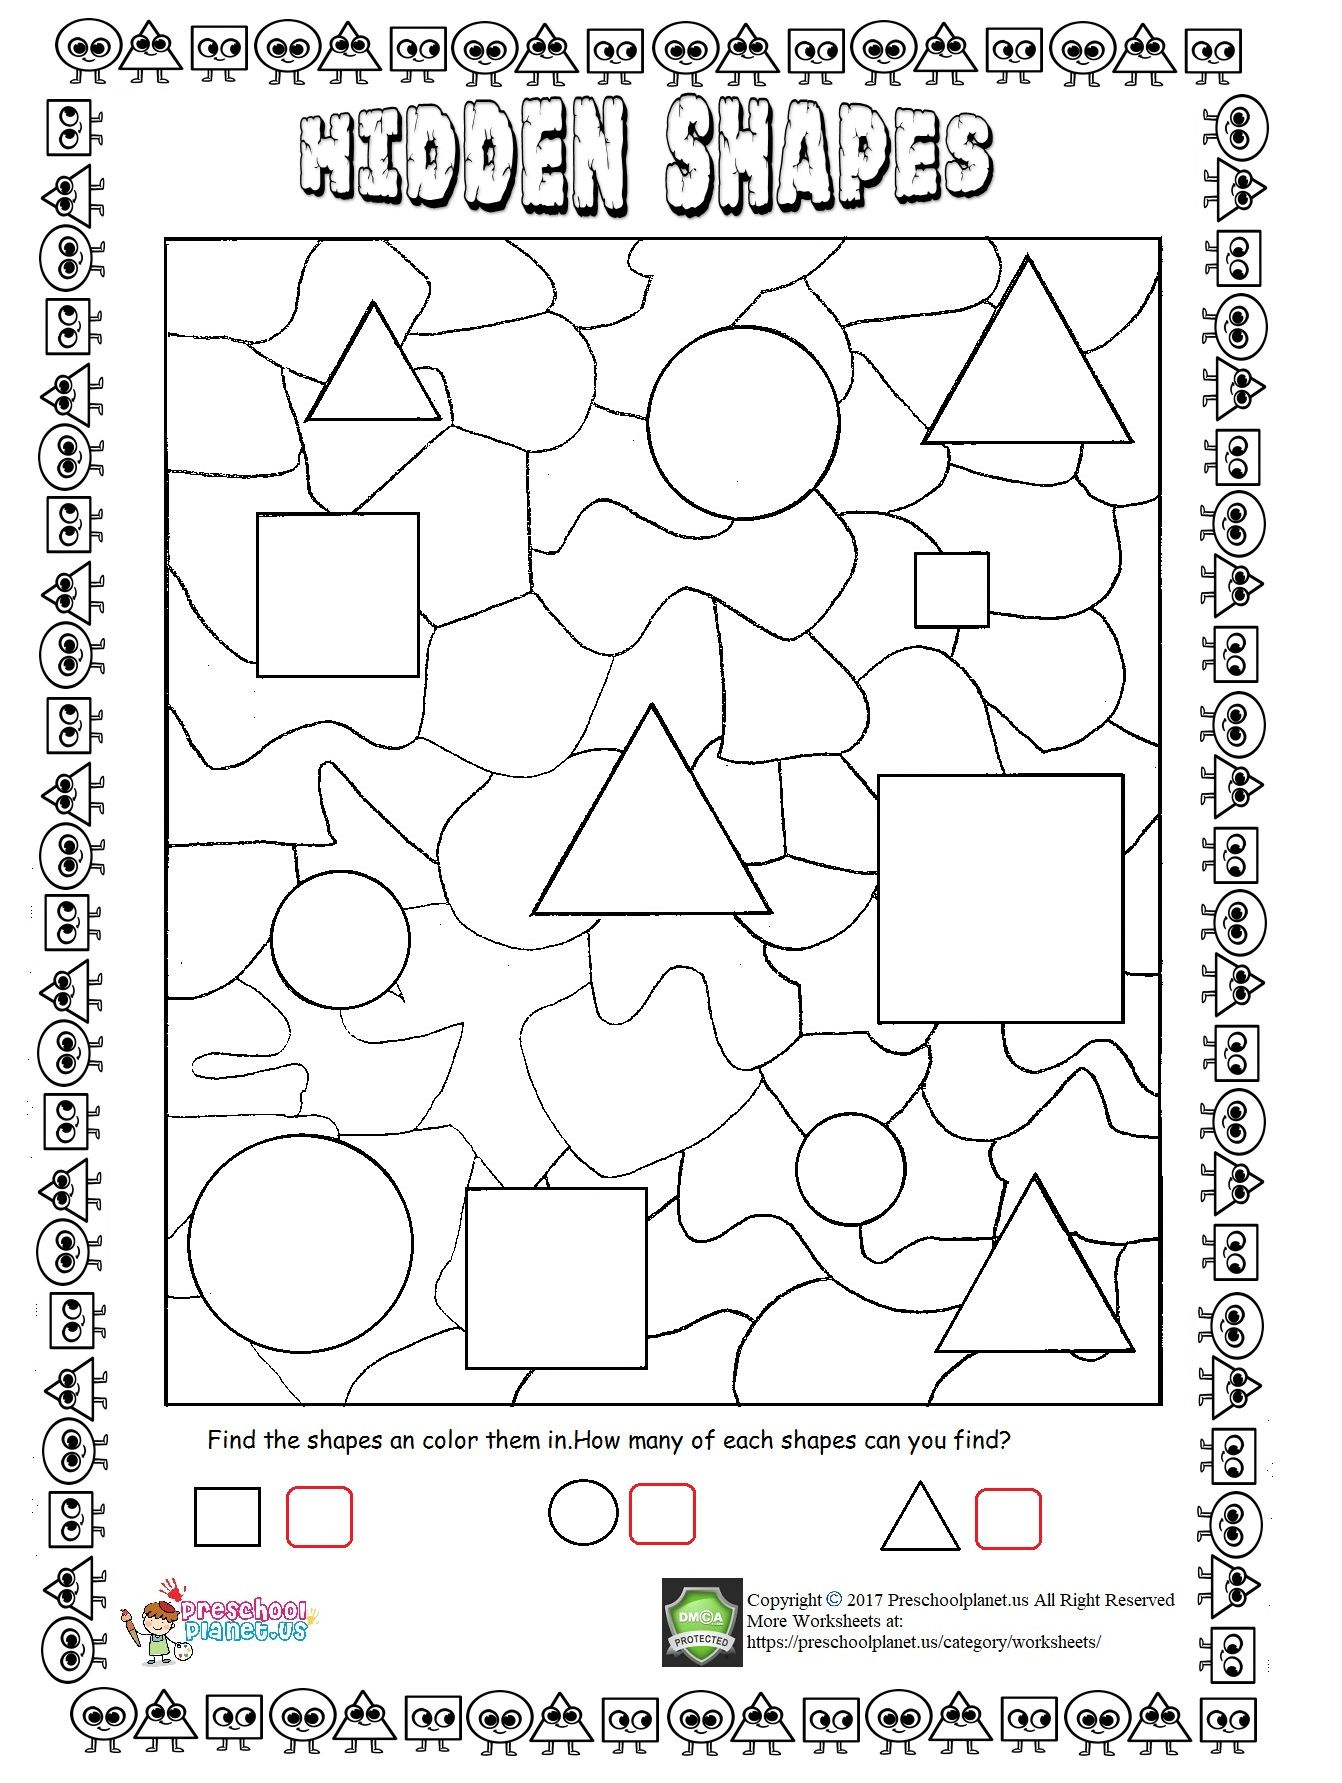 Tracing Shapes Worksheet Ruler